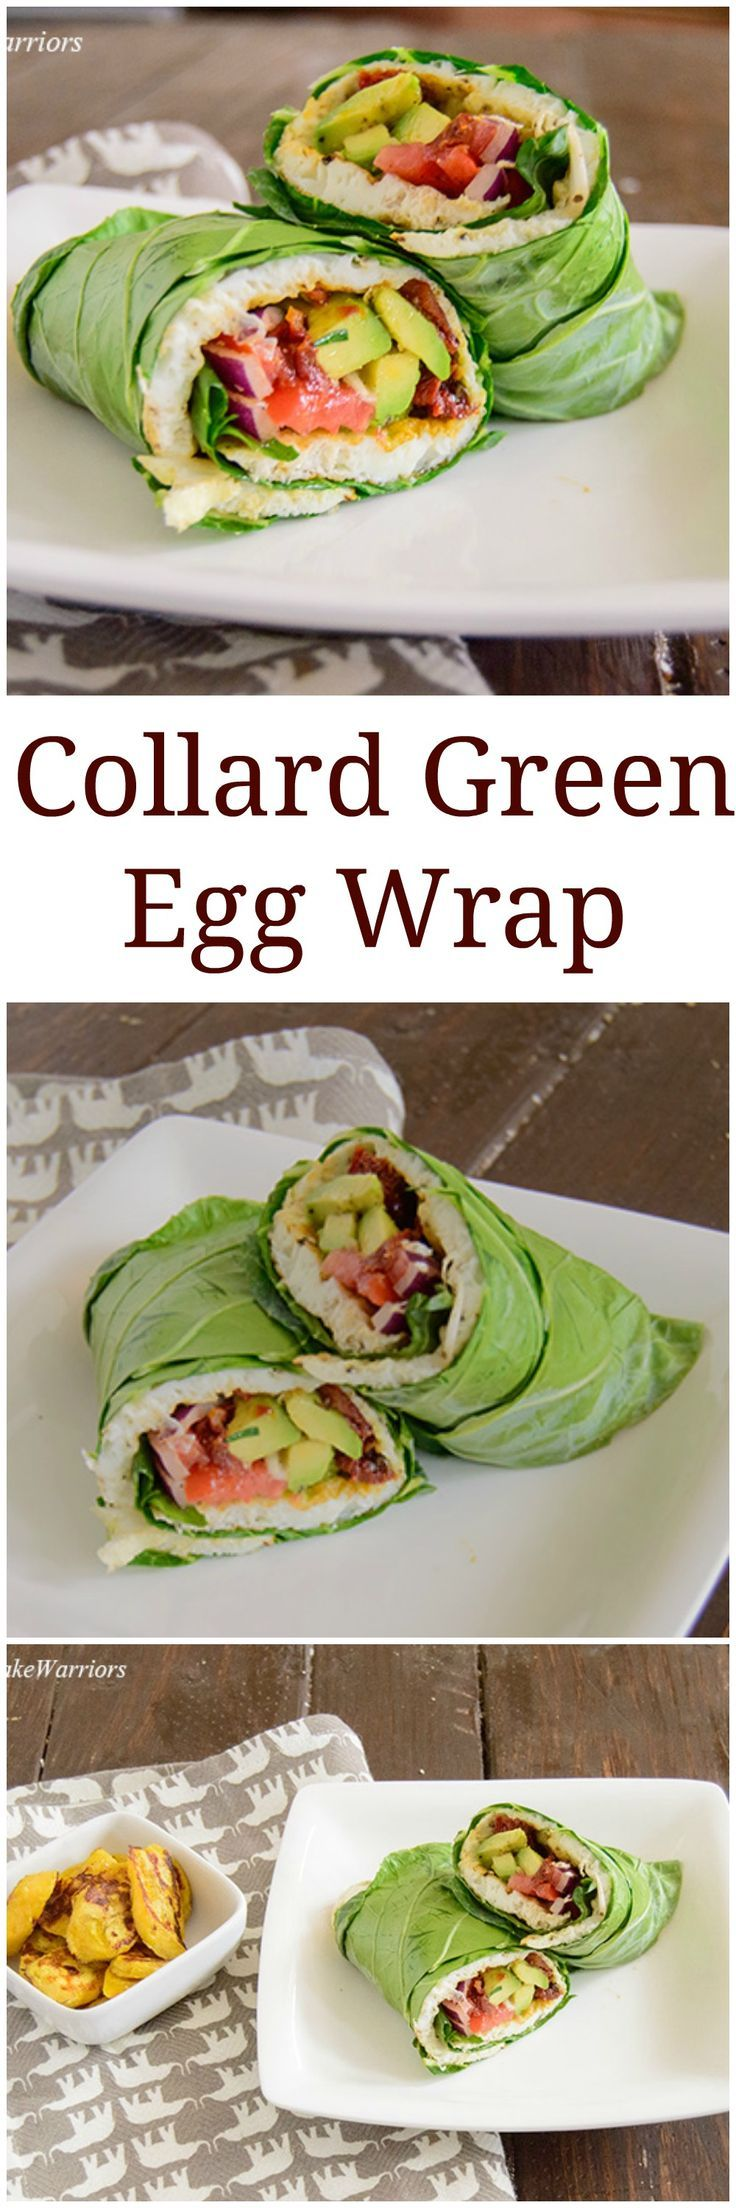 Egg White Collard Green Wrap - easy, healthy breakfast idea! Packed with protein, gluten free, low fat, full of flavor! A great way to get your veggies in!